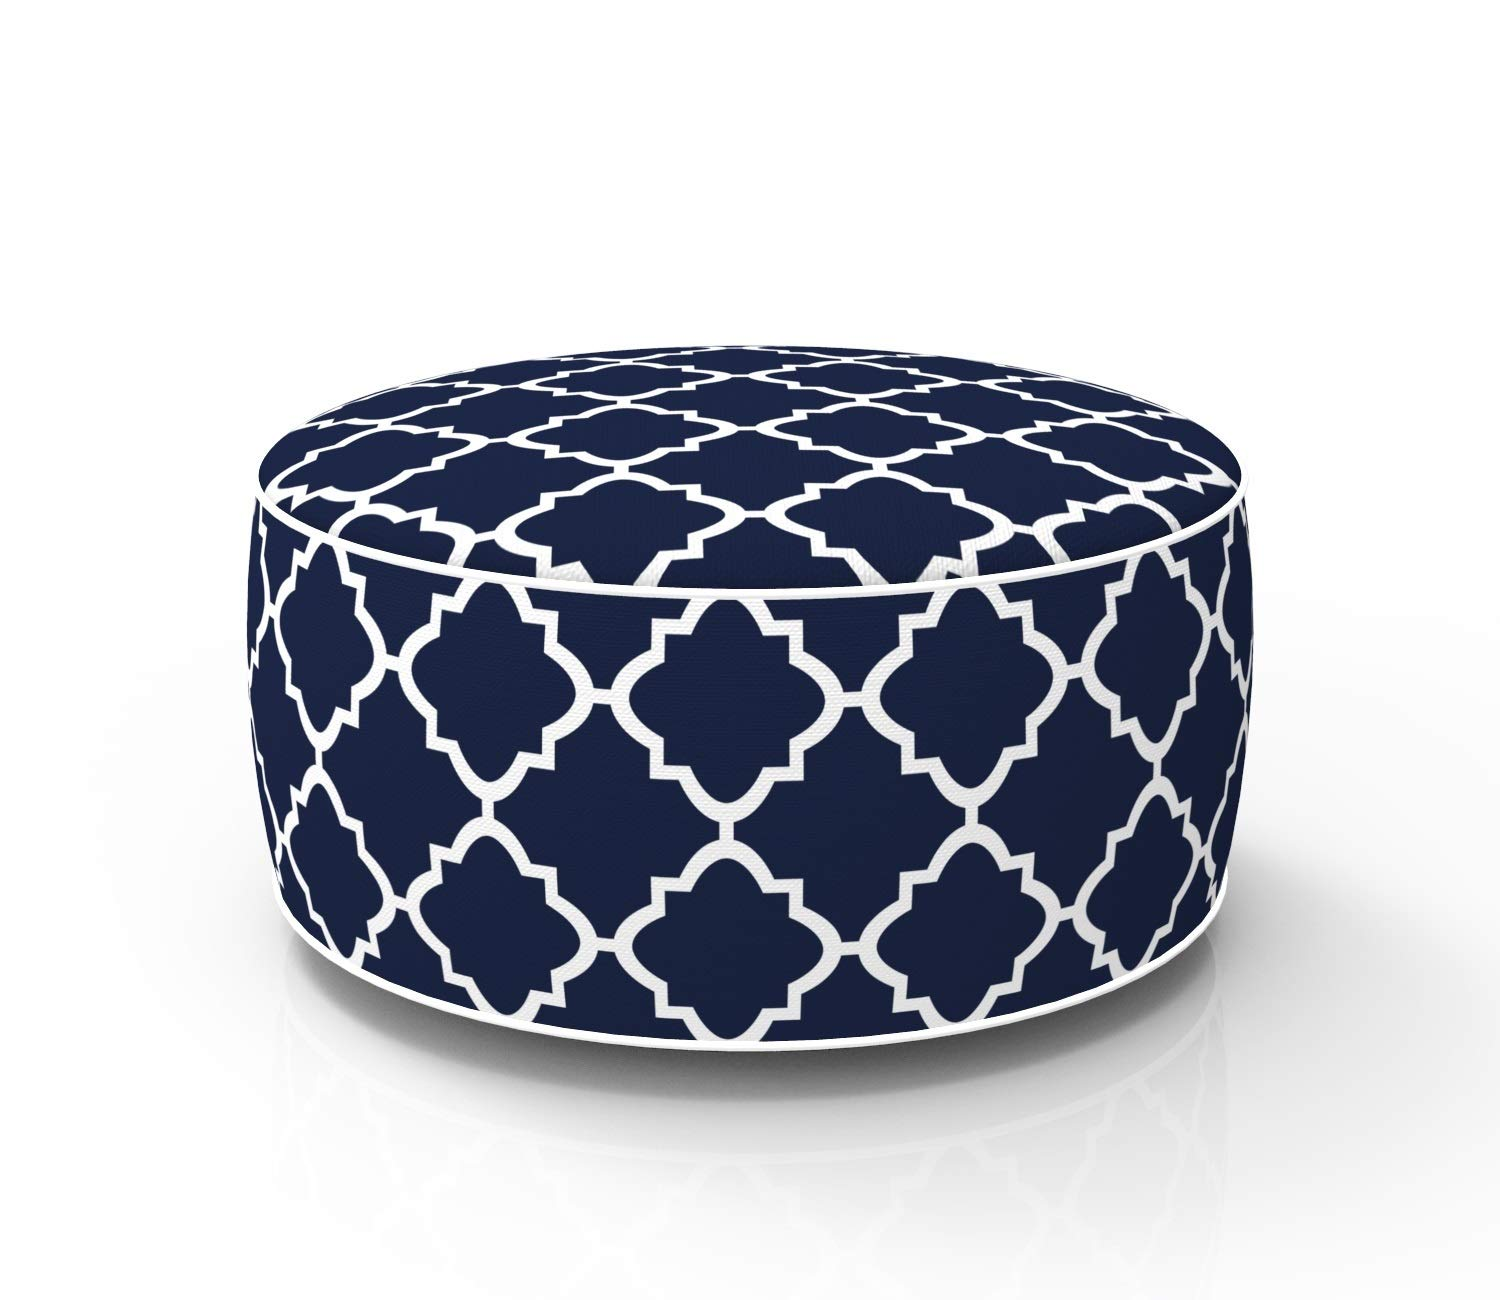 Fabritones Outdoor Inflatable Stool Navy Quatrefoil Lattice Round Ottoman Portable Foot Rest for Patio, Camping - Suitable for Kids and Adults